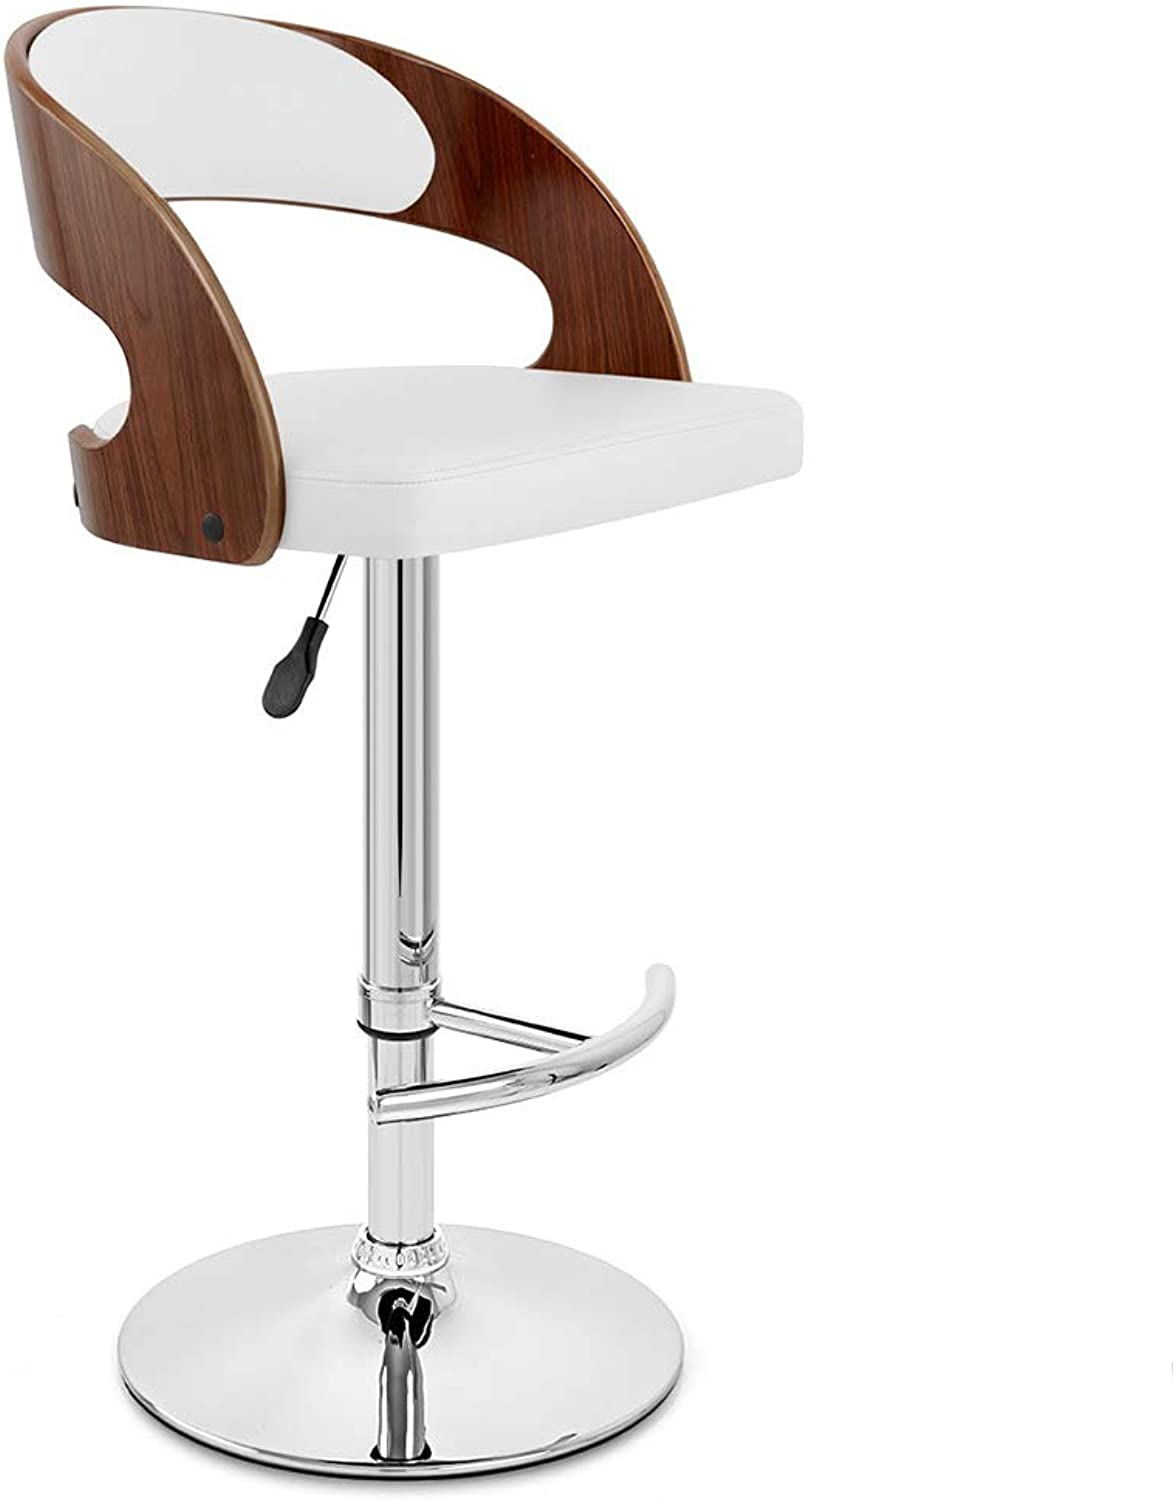 LIQICAI Bar Stool with Faux Leather Backs Seat Upholster Adjustable Height Swivel Stool Backrest Footrest Large Base, 4 colors Optional (color   White, Size   1 PCS)